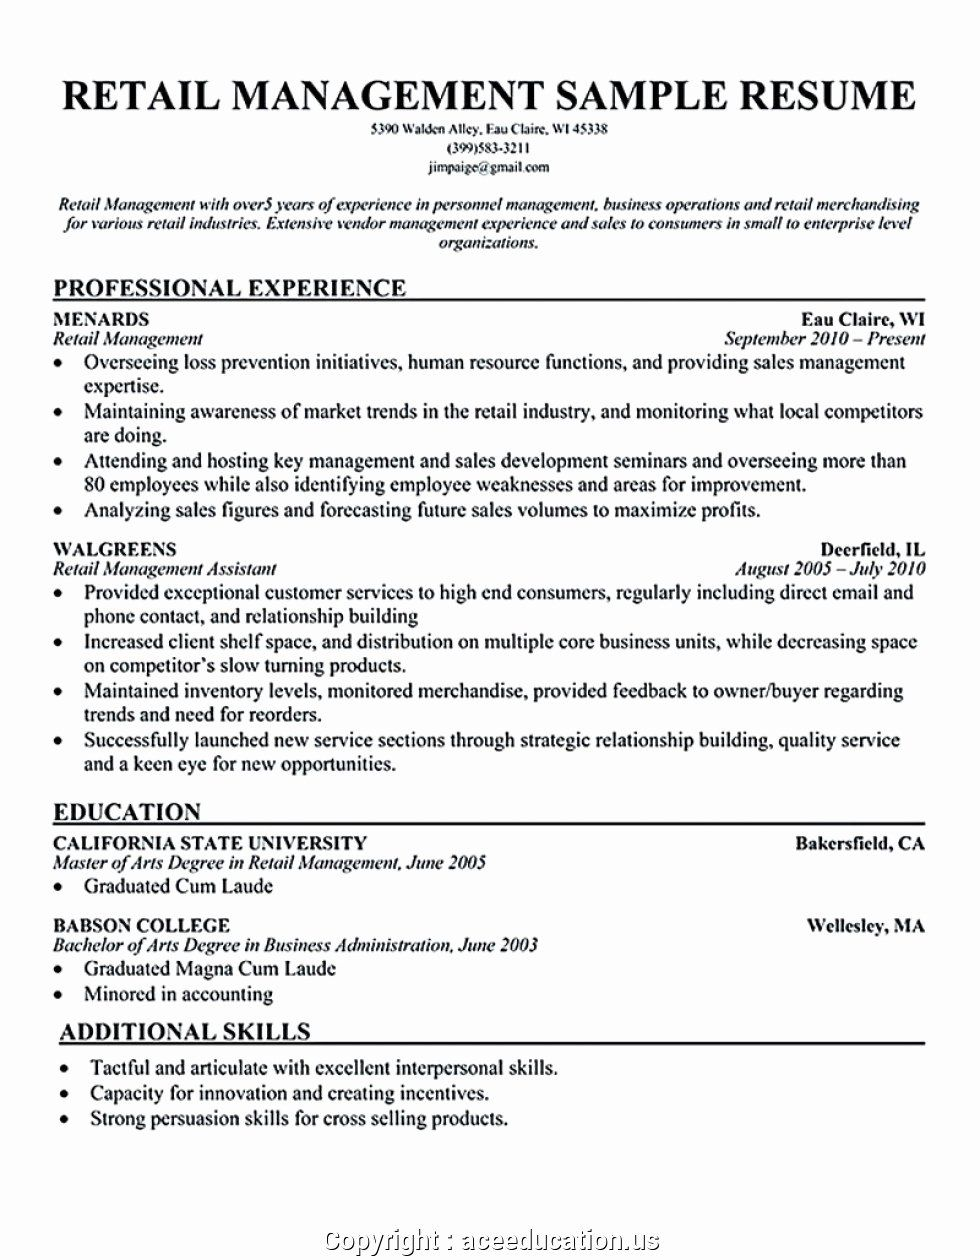 Retail Store Manager Resume Luxury Creative Clothing Store Manager Resume Example Resume Job Resume Examples Resume Manager Resume